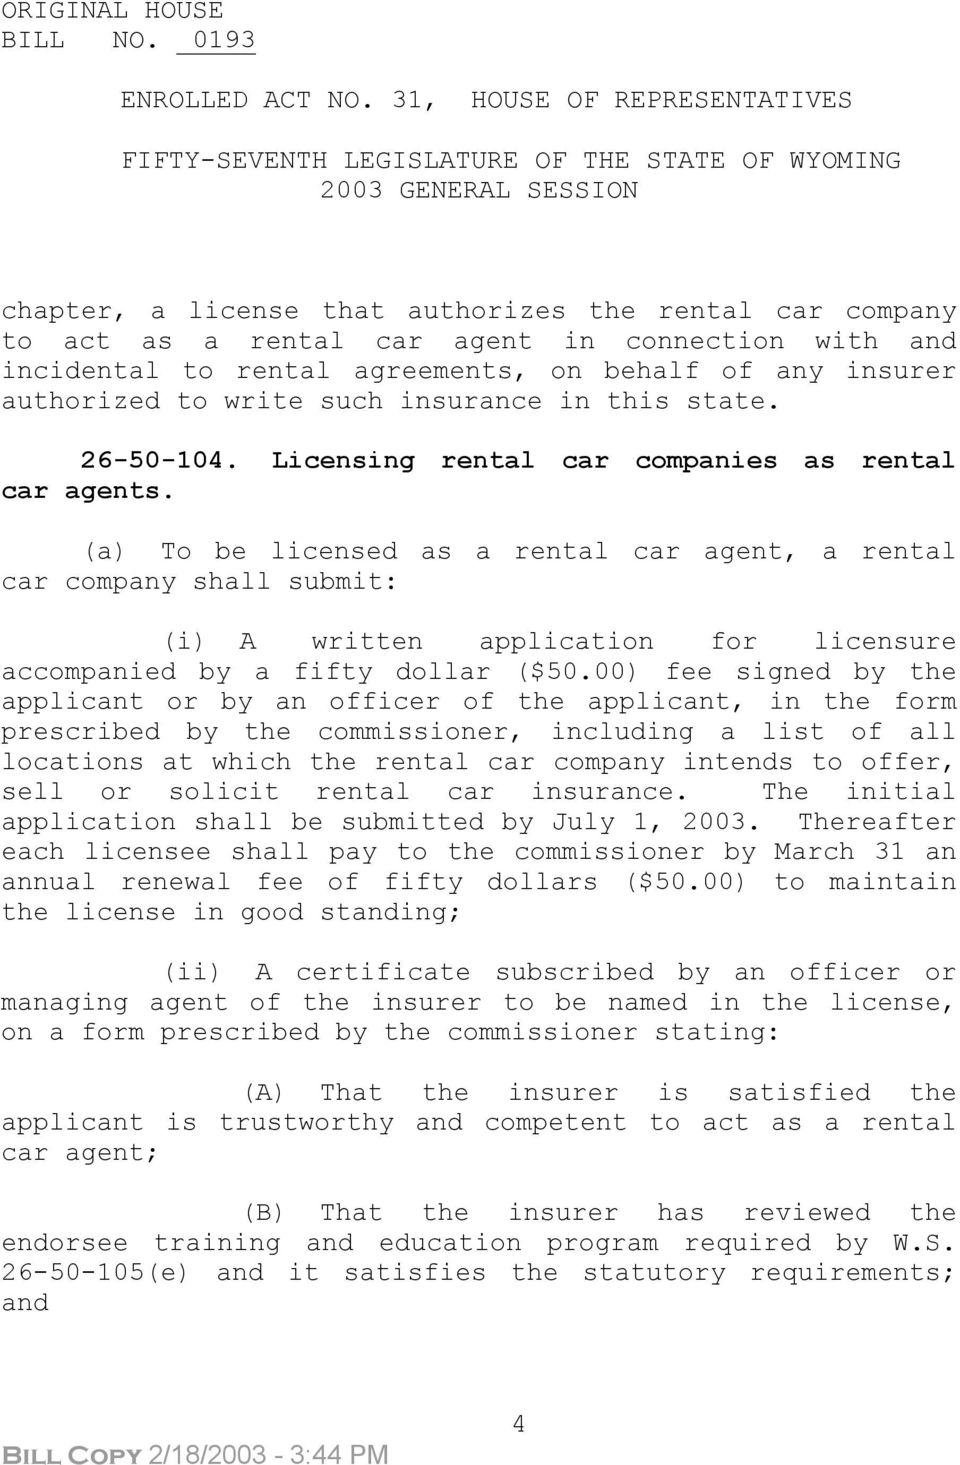 (a) To be licensed as a rental car agent, a rental car company shall submit: (i) A written application for licensure accompanied by a fifty dollar ($50.